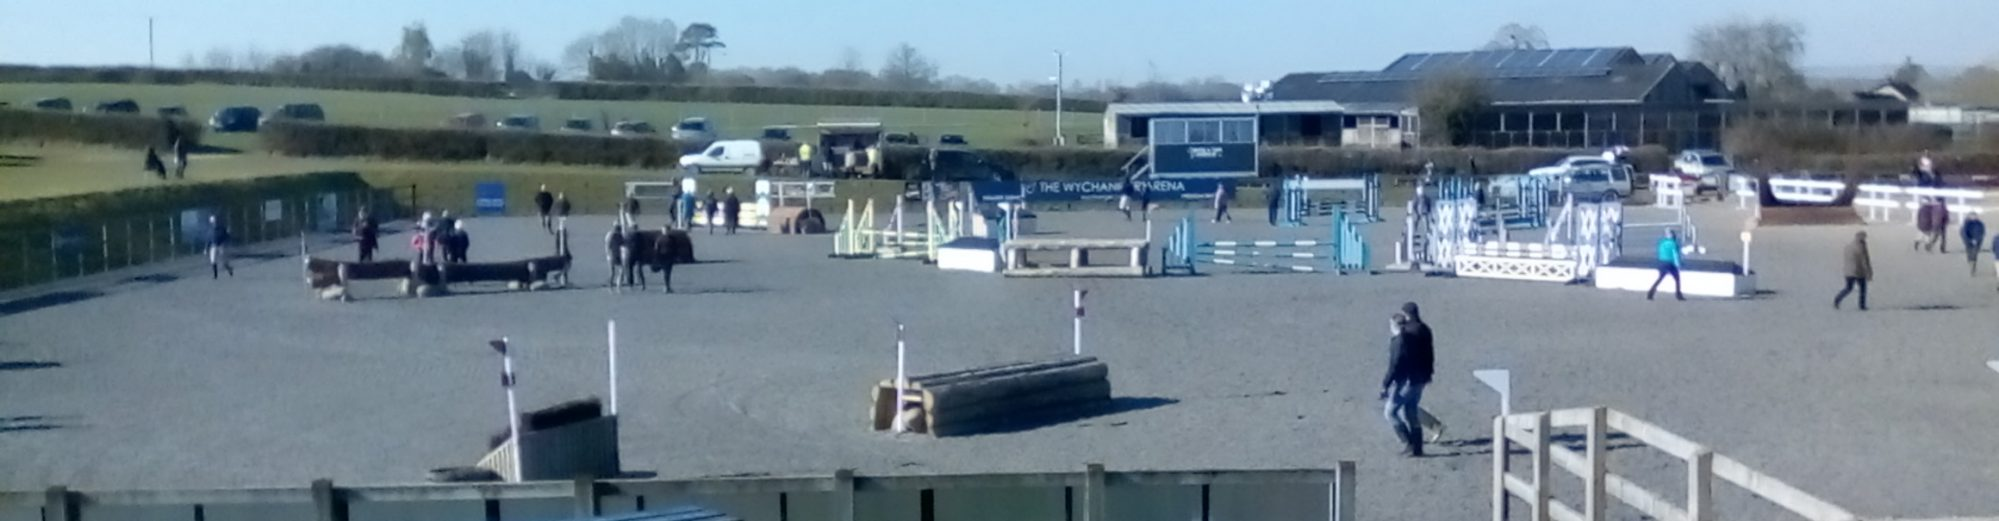 British Riding Clubs Area 12